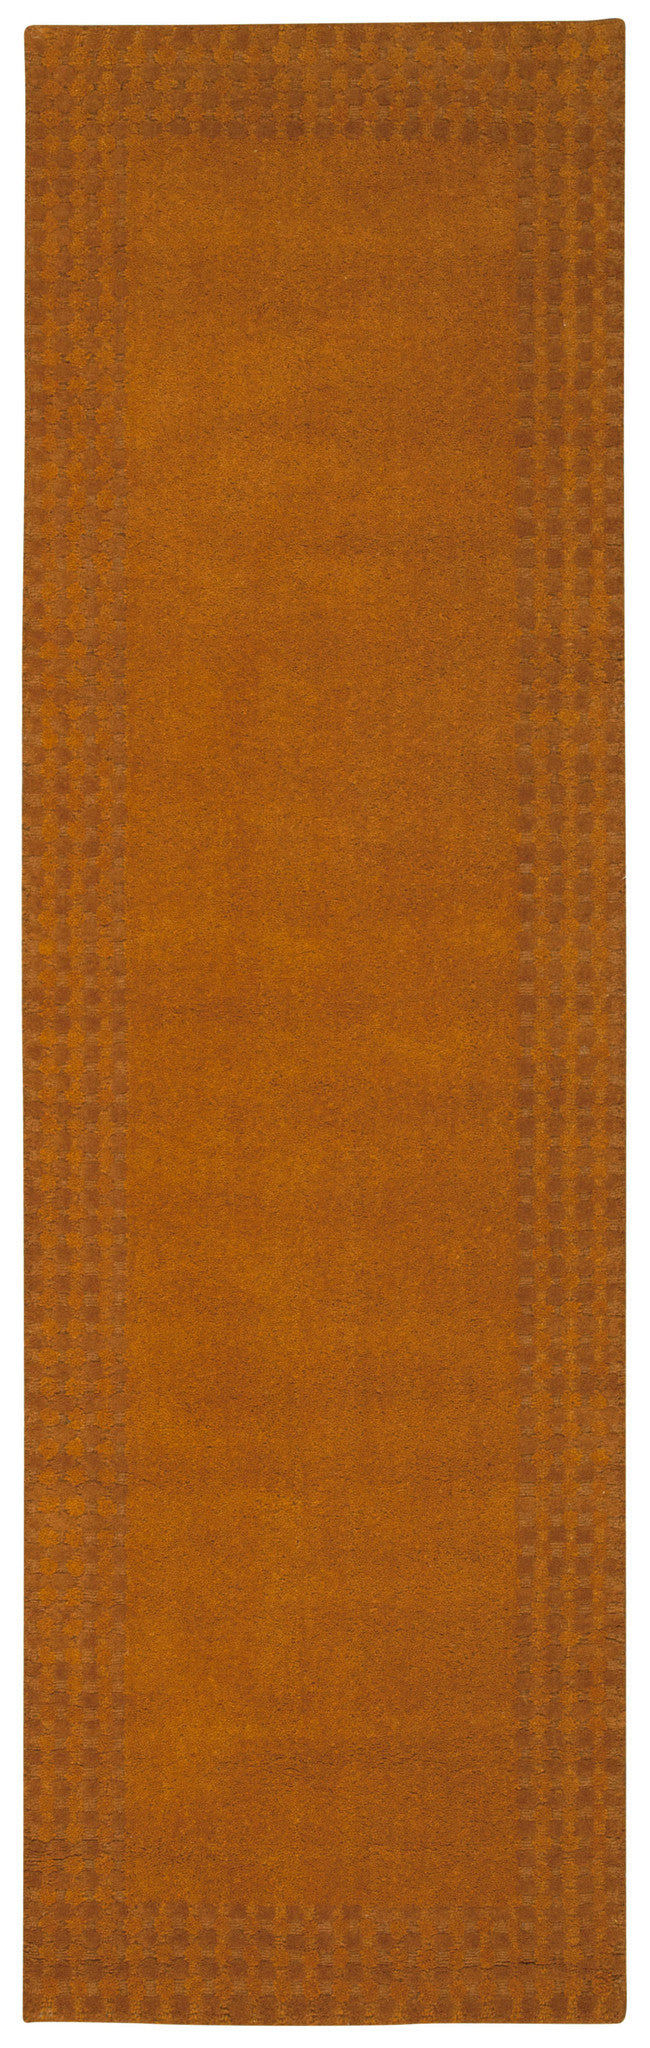 Kathy Ireland Cottage Grove Terraco Area Rug By Nourison KI700 TERR